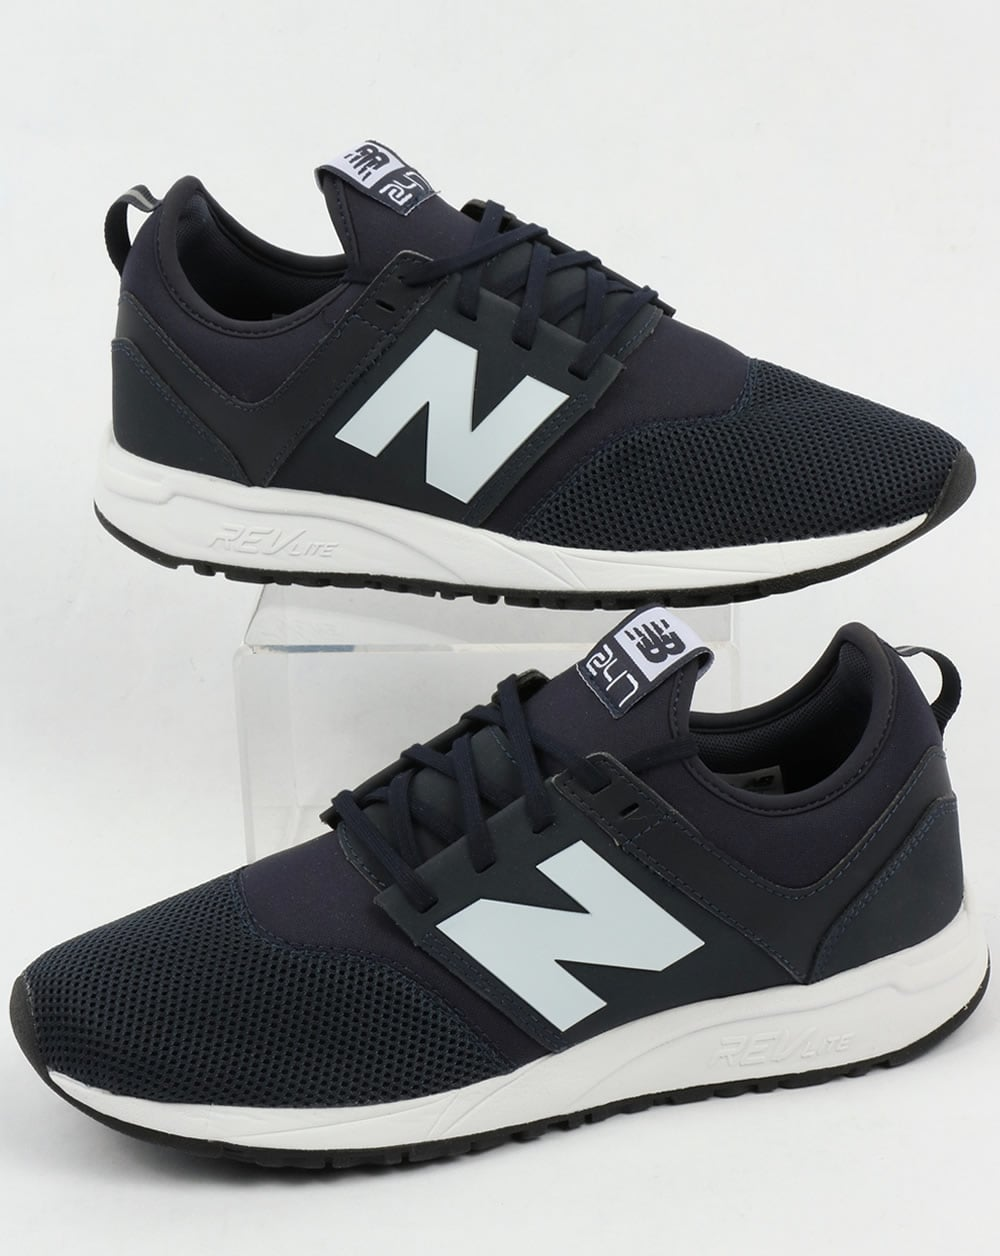 new balance 247 classic trainers navy shoes runner sneakers. Black Bedroom Furniture Sets. Home Design Ideas